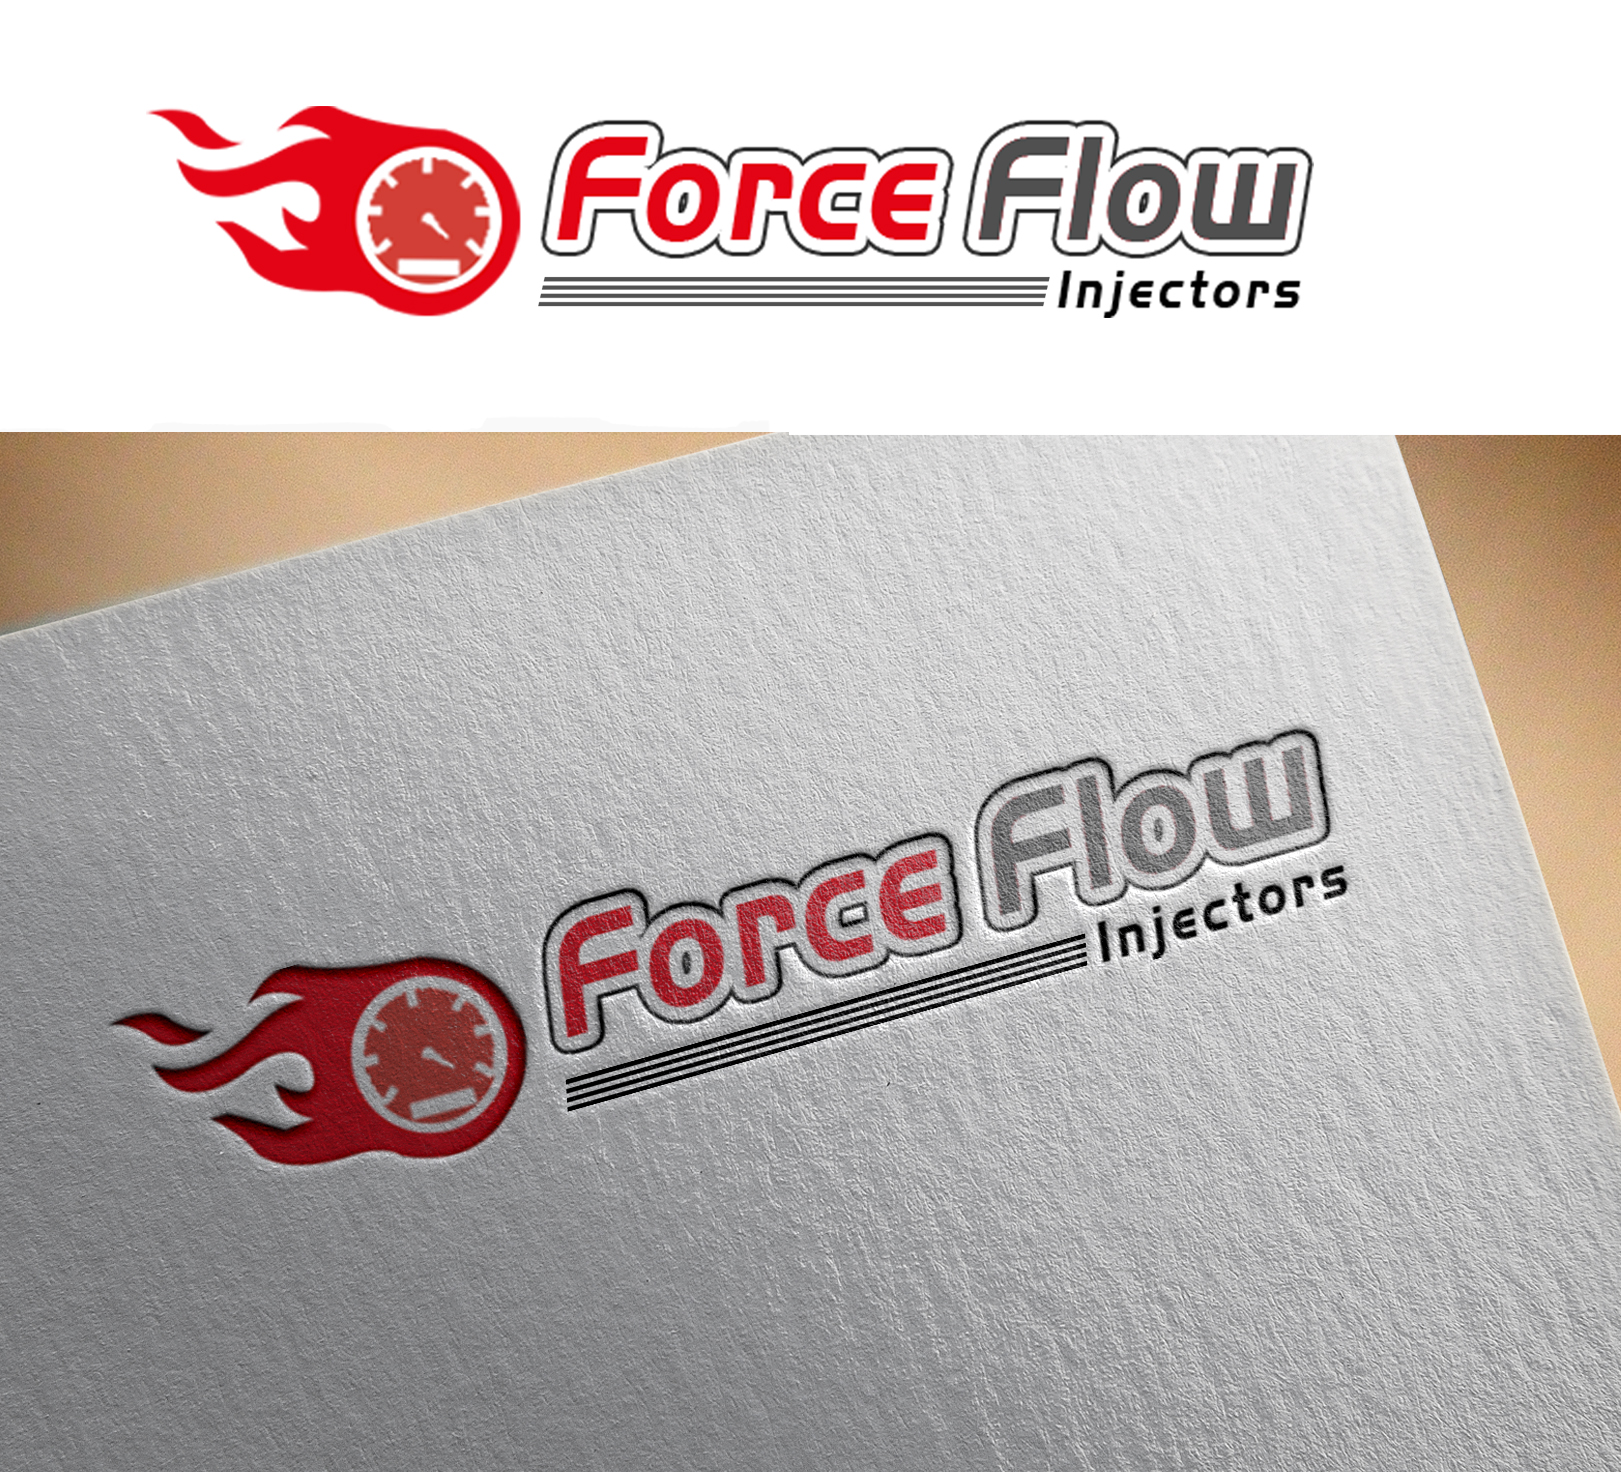 Logo Design by Sohaib Ali Khan - Entry No. 113 in the Logo Design Contest Fun Logo Design for Flow Force Injectors.